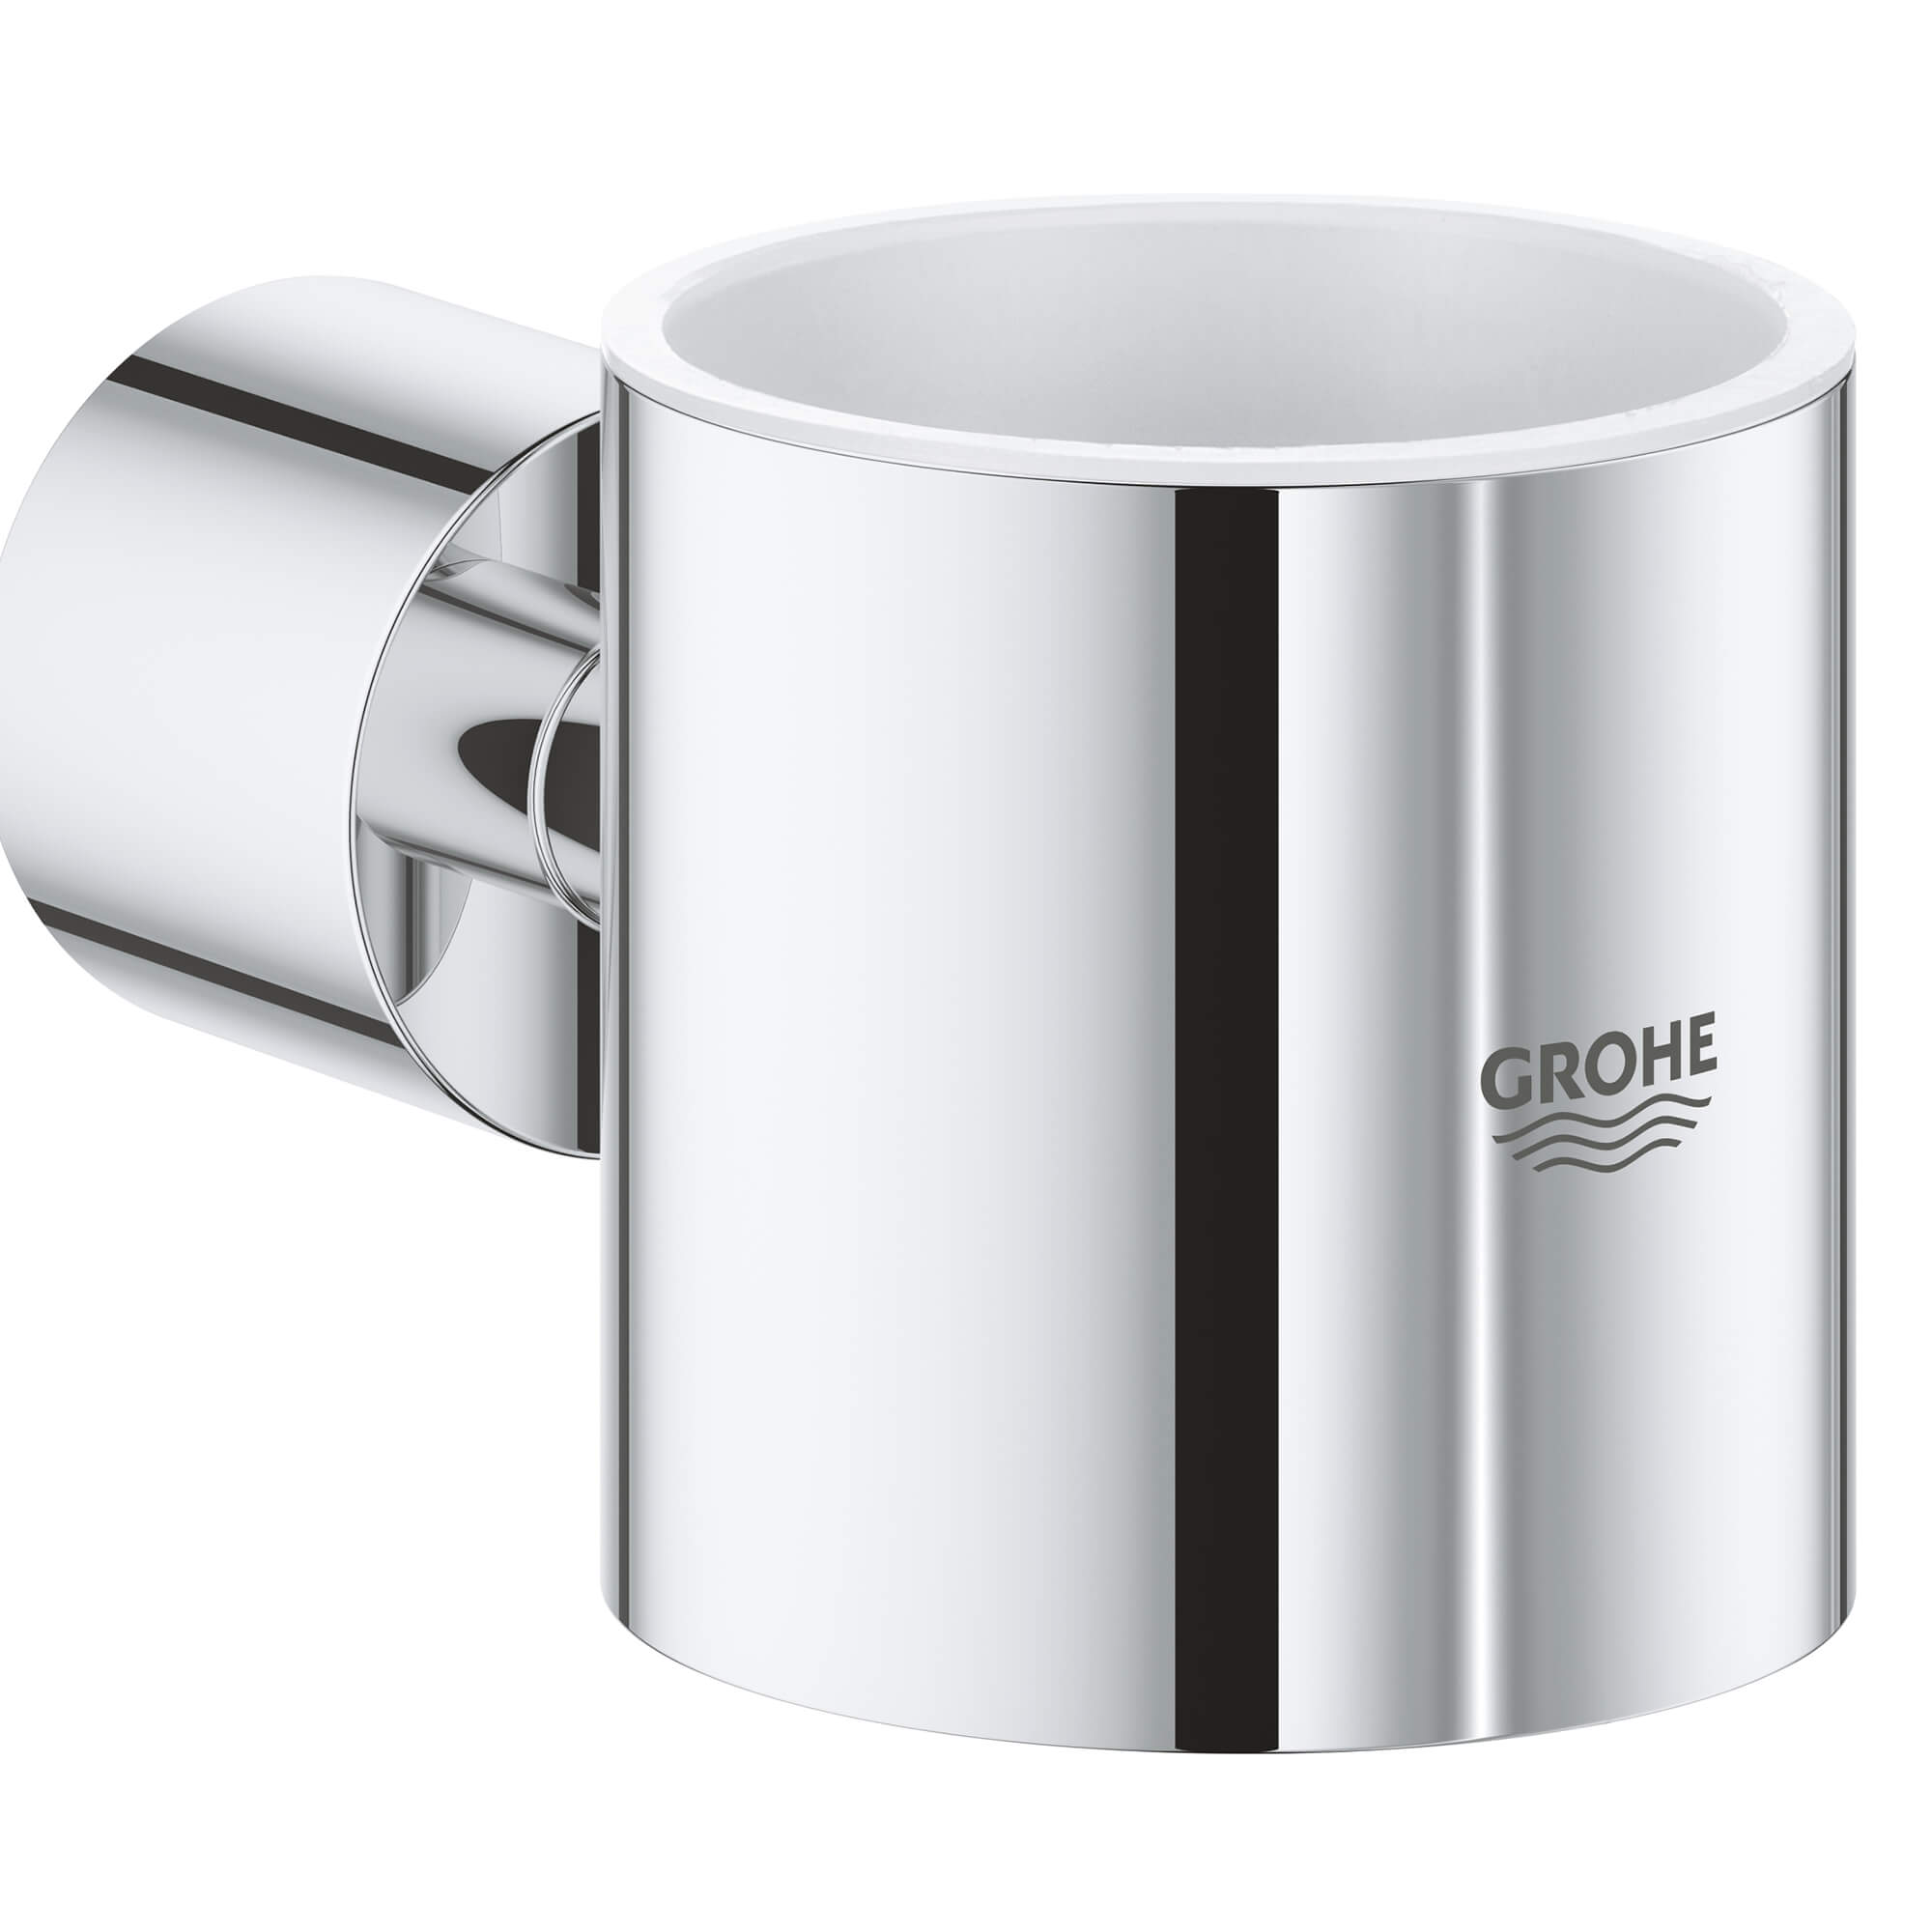 Holder For Glass Soap Dish Or Soap Dispenser GROHE CHROME